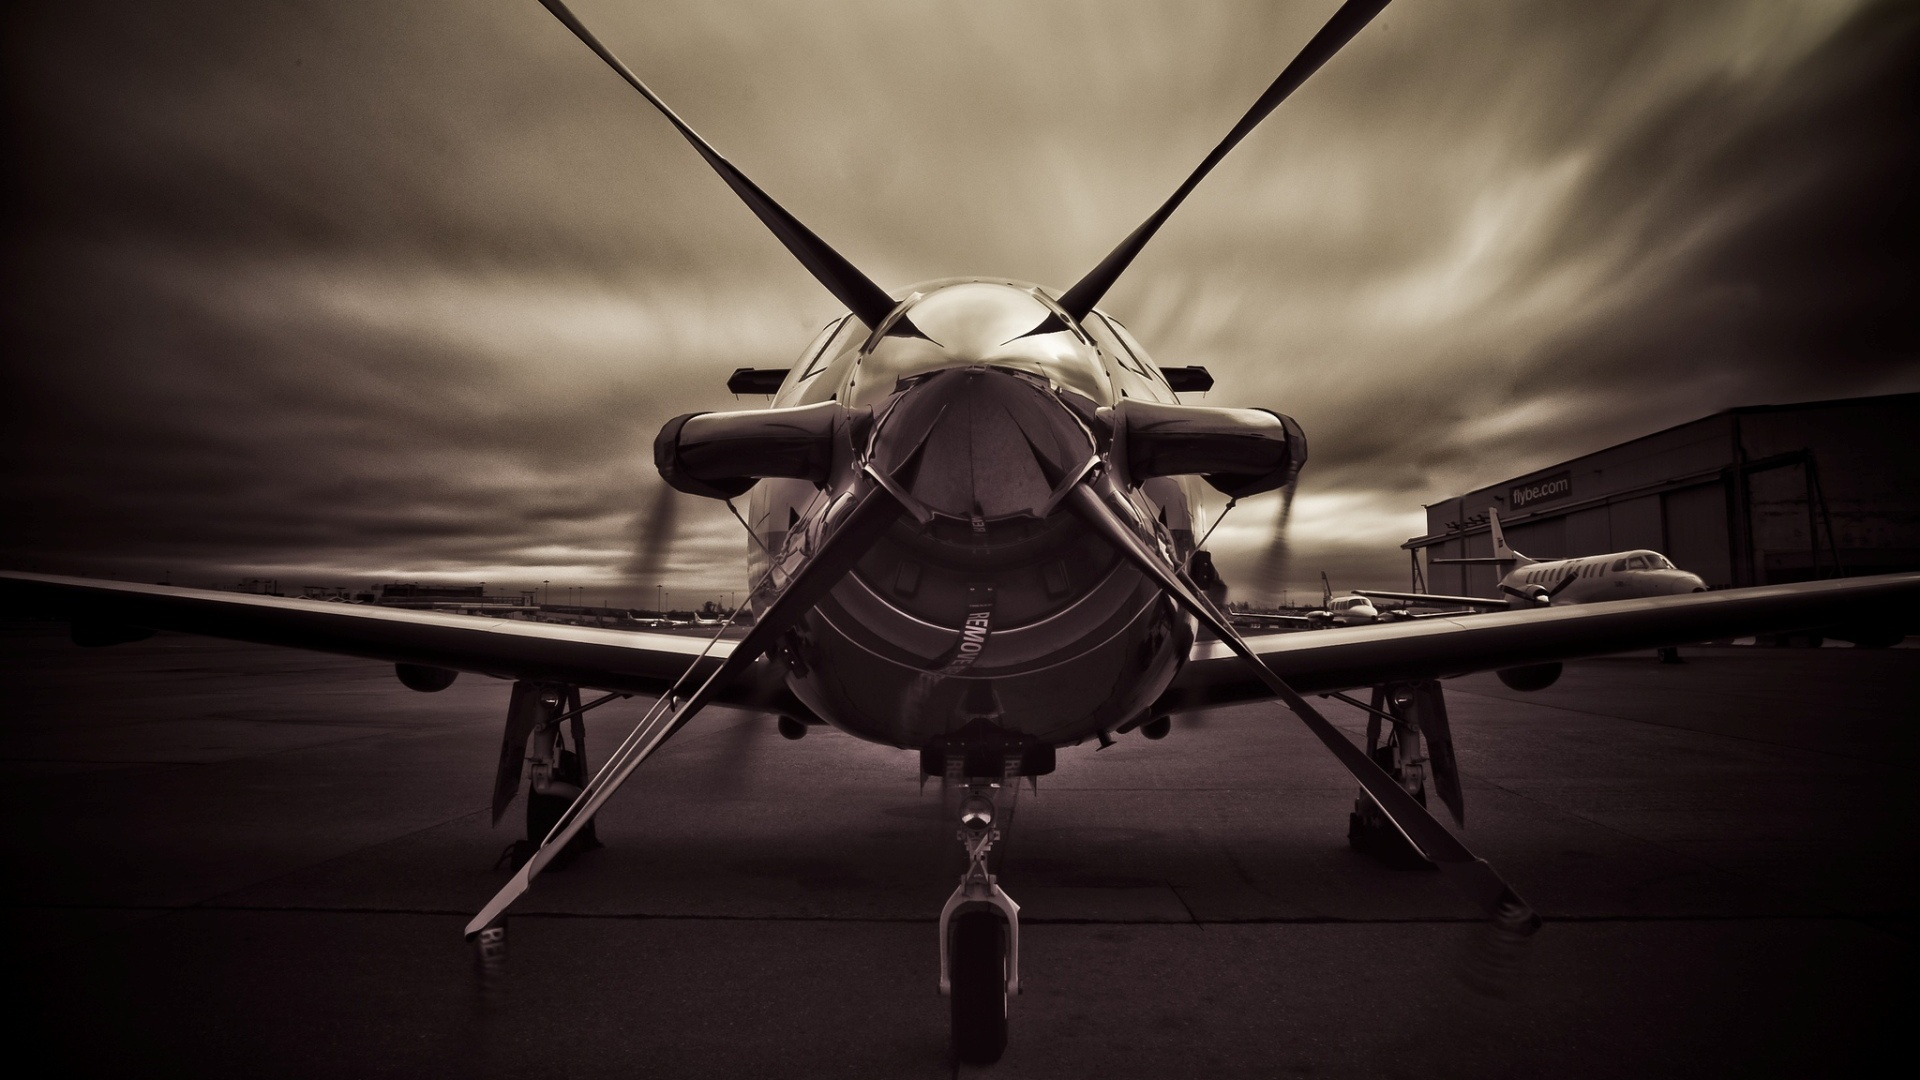 Pilatus pc 12 turboprop